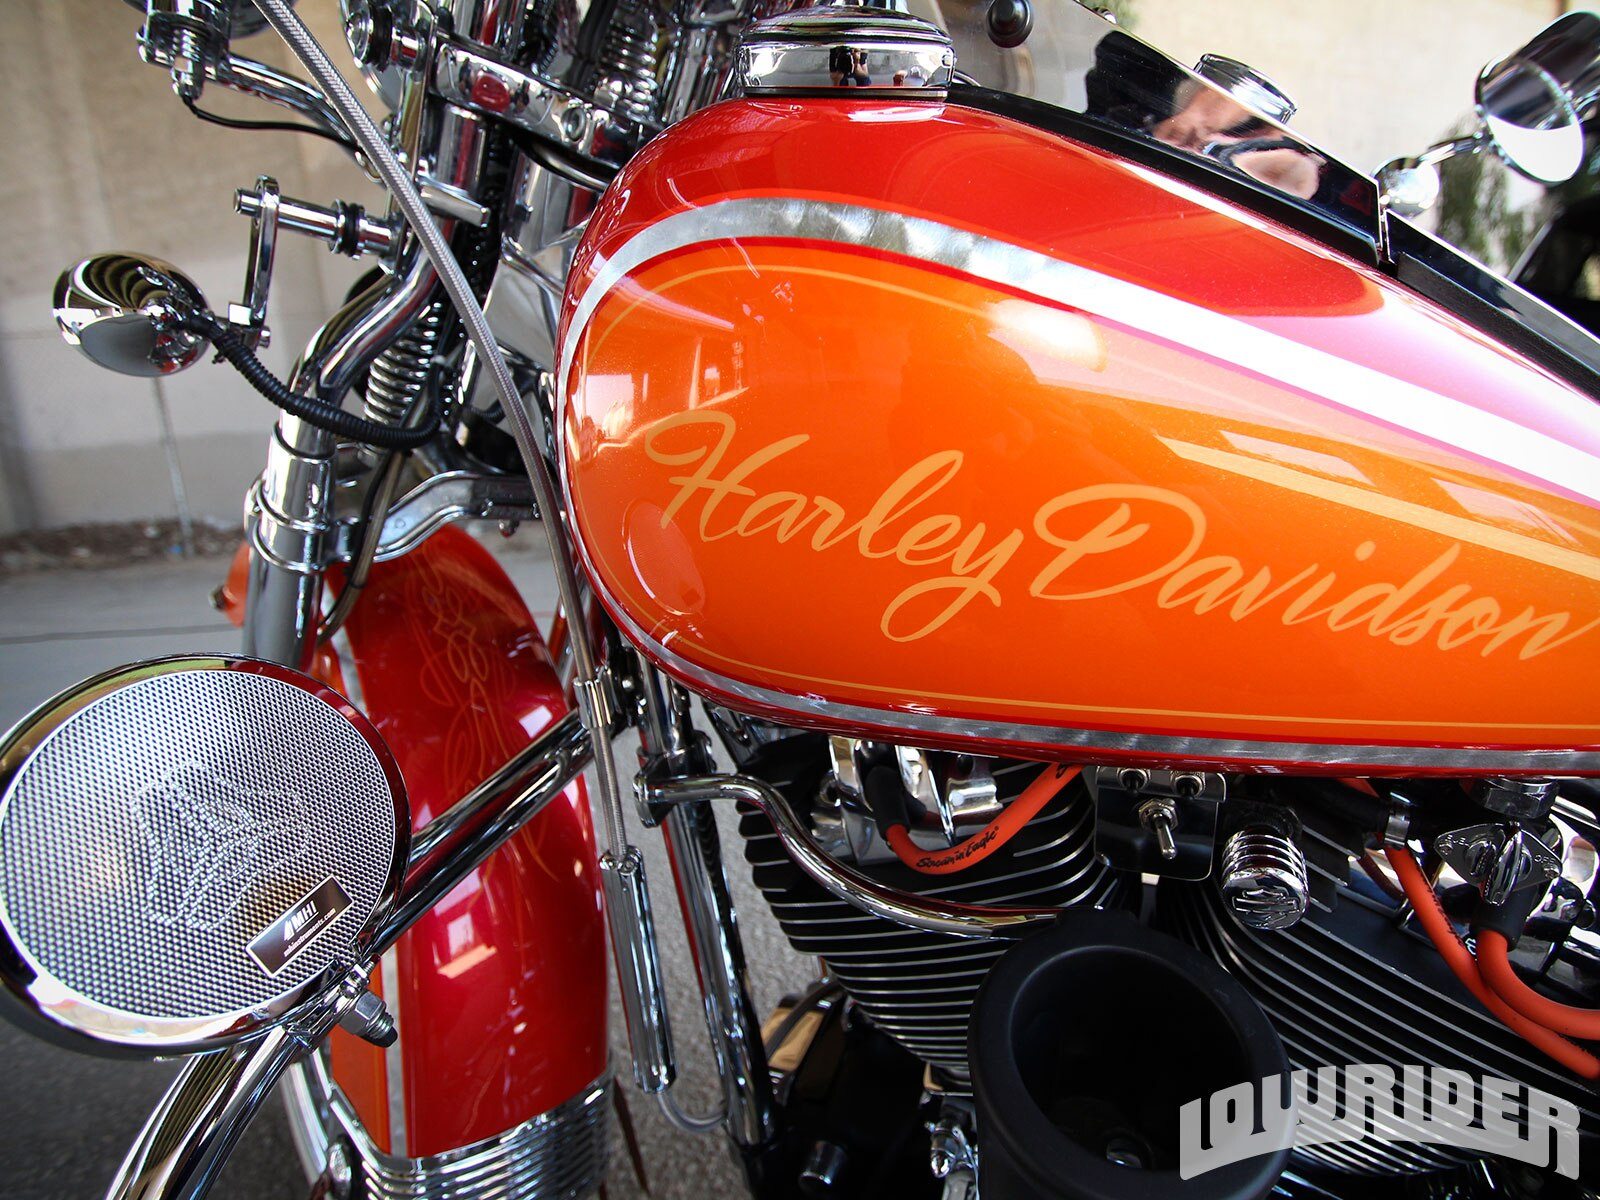 2003 harley-davidson 100th anniversary edition heritage springer